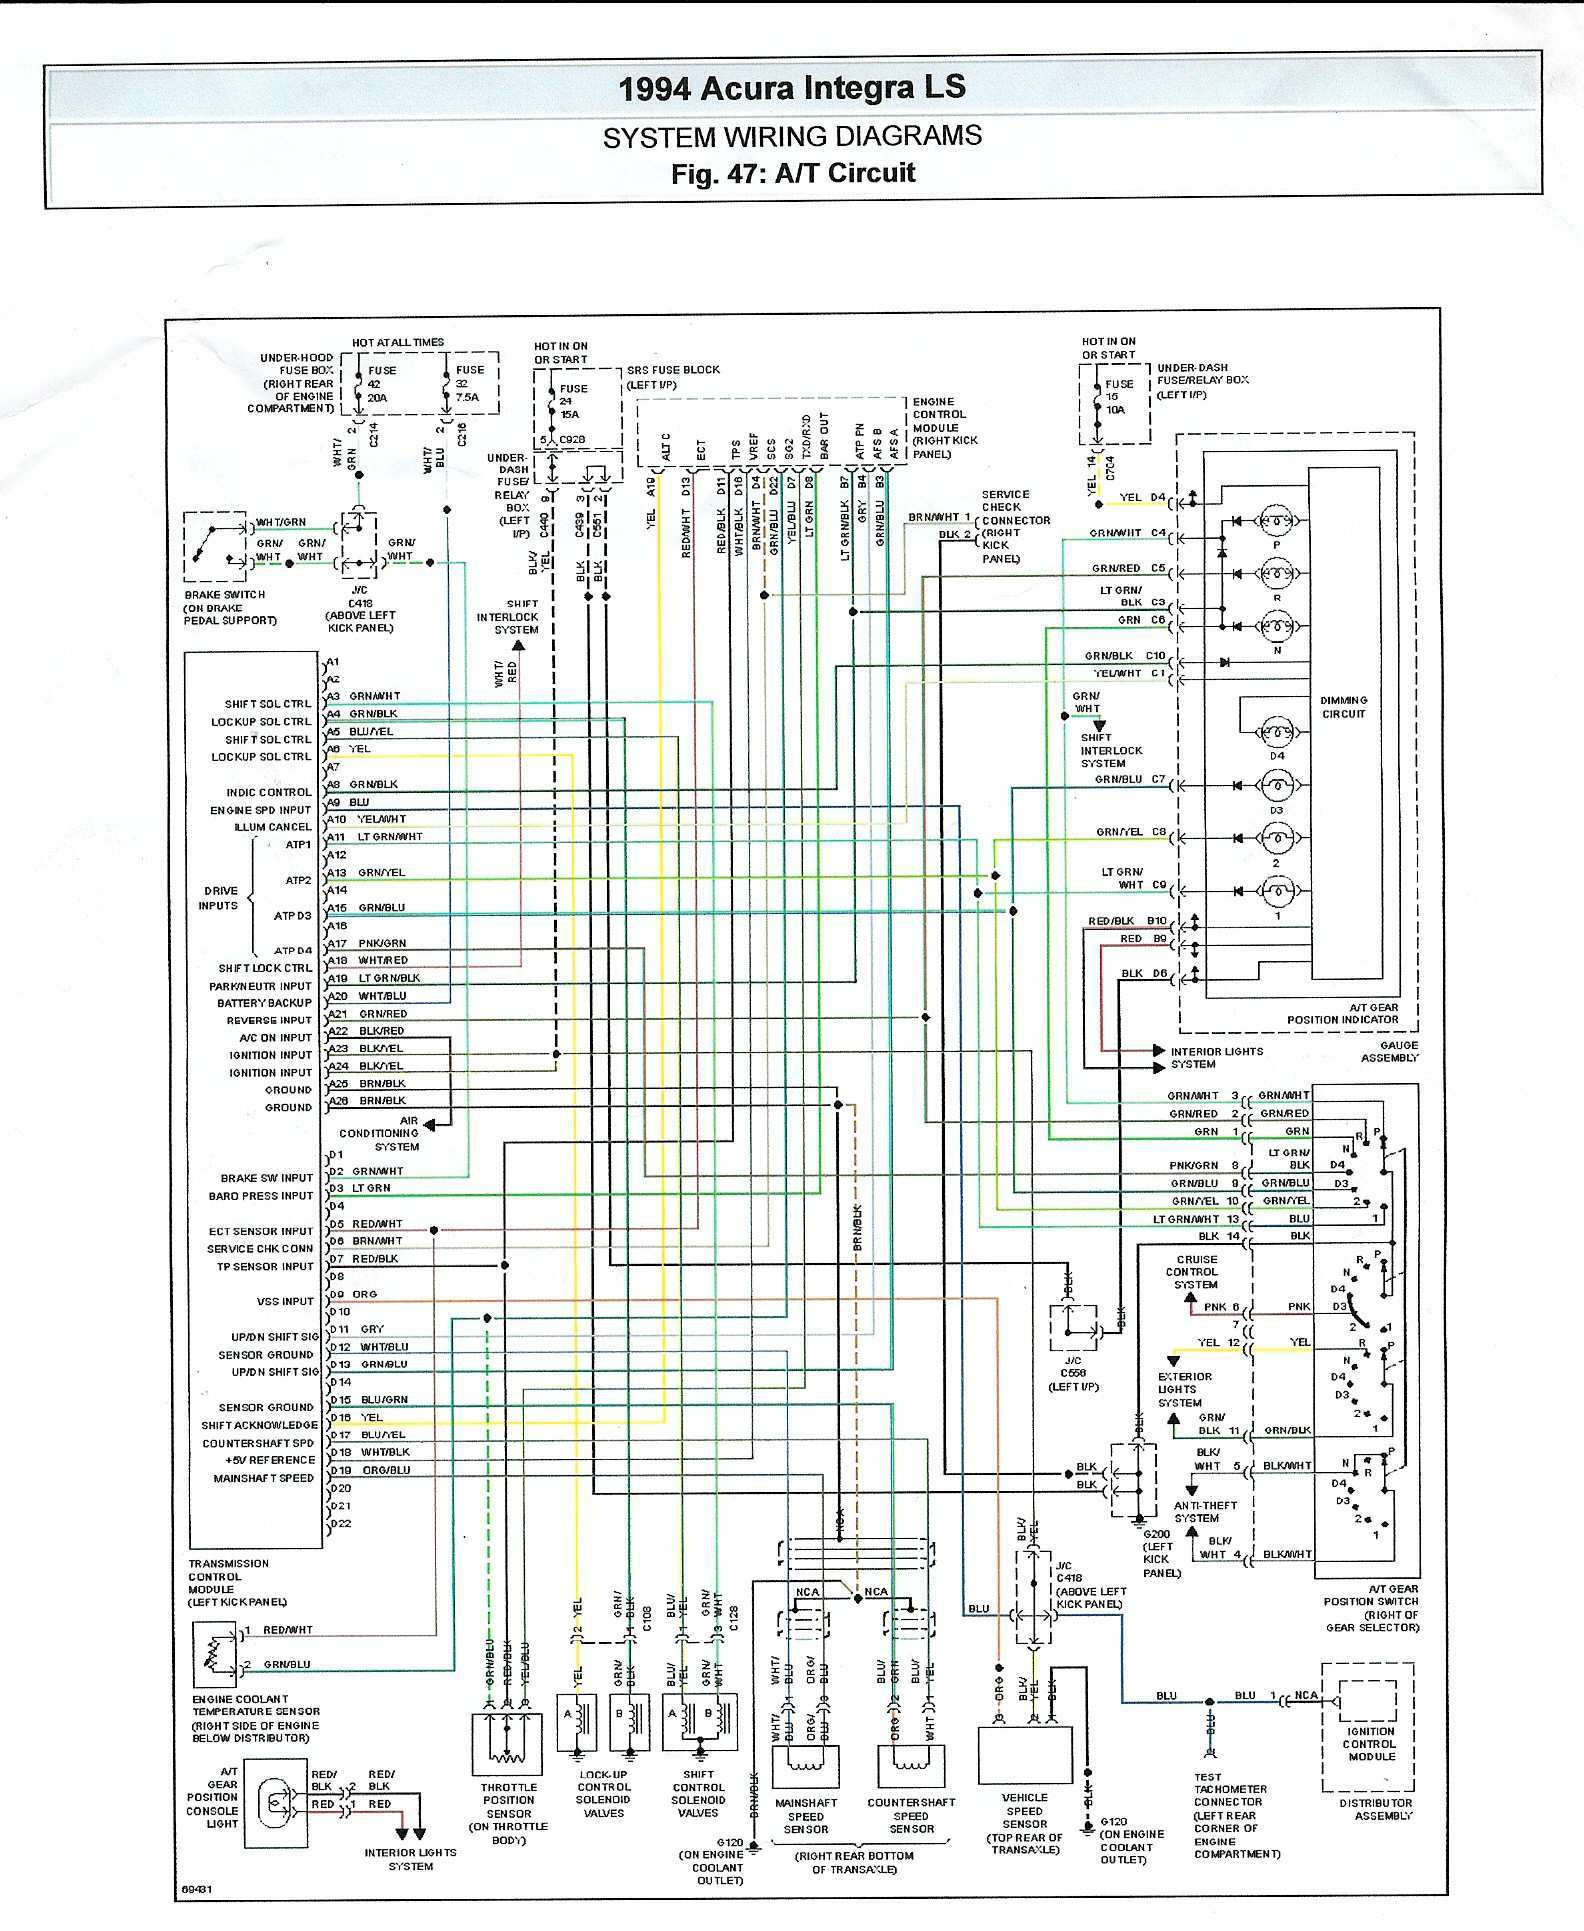 WRG-7799] Accord Wiring Diagrams on